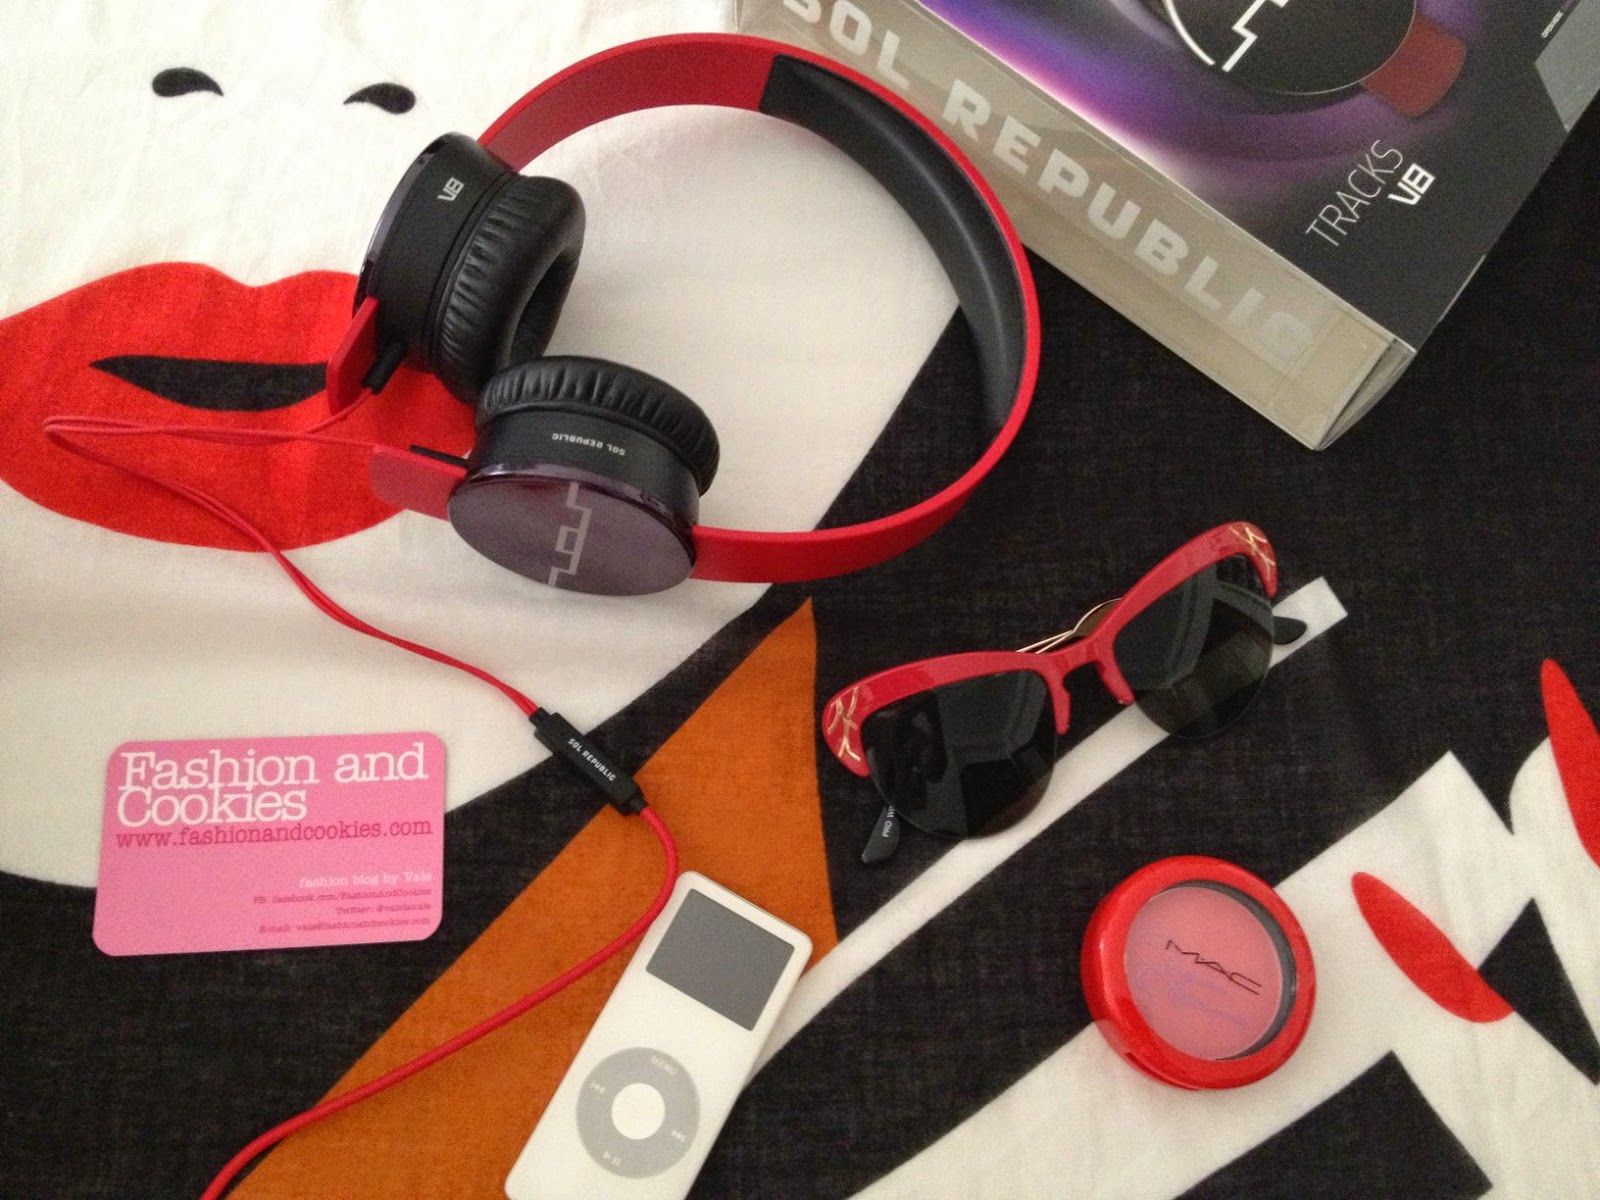 Sol Republic headphones, MAC Sharon Osbourne blush, Fashion and Cookies, fashion blogger